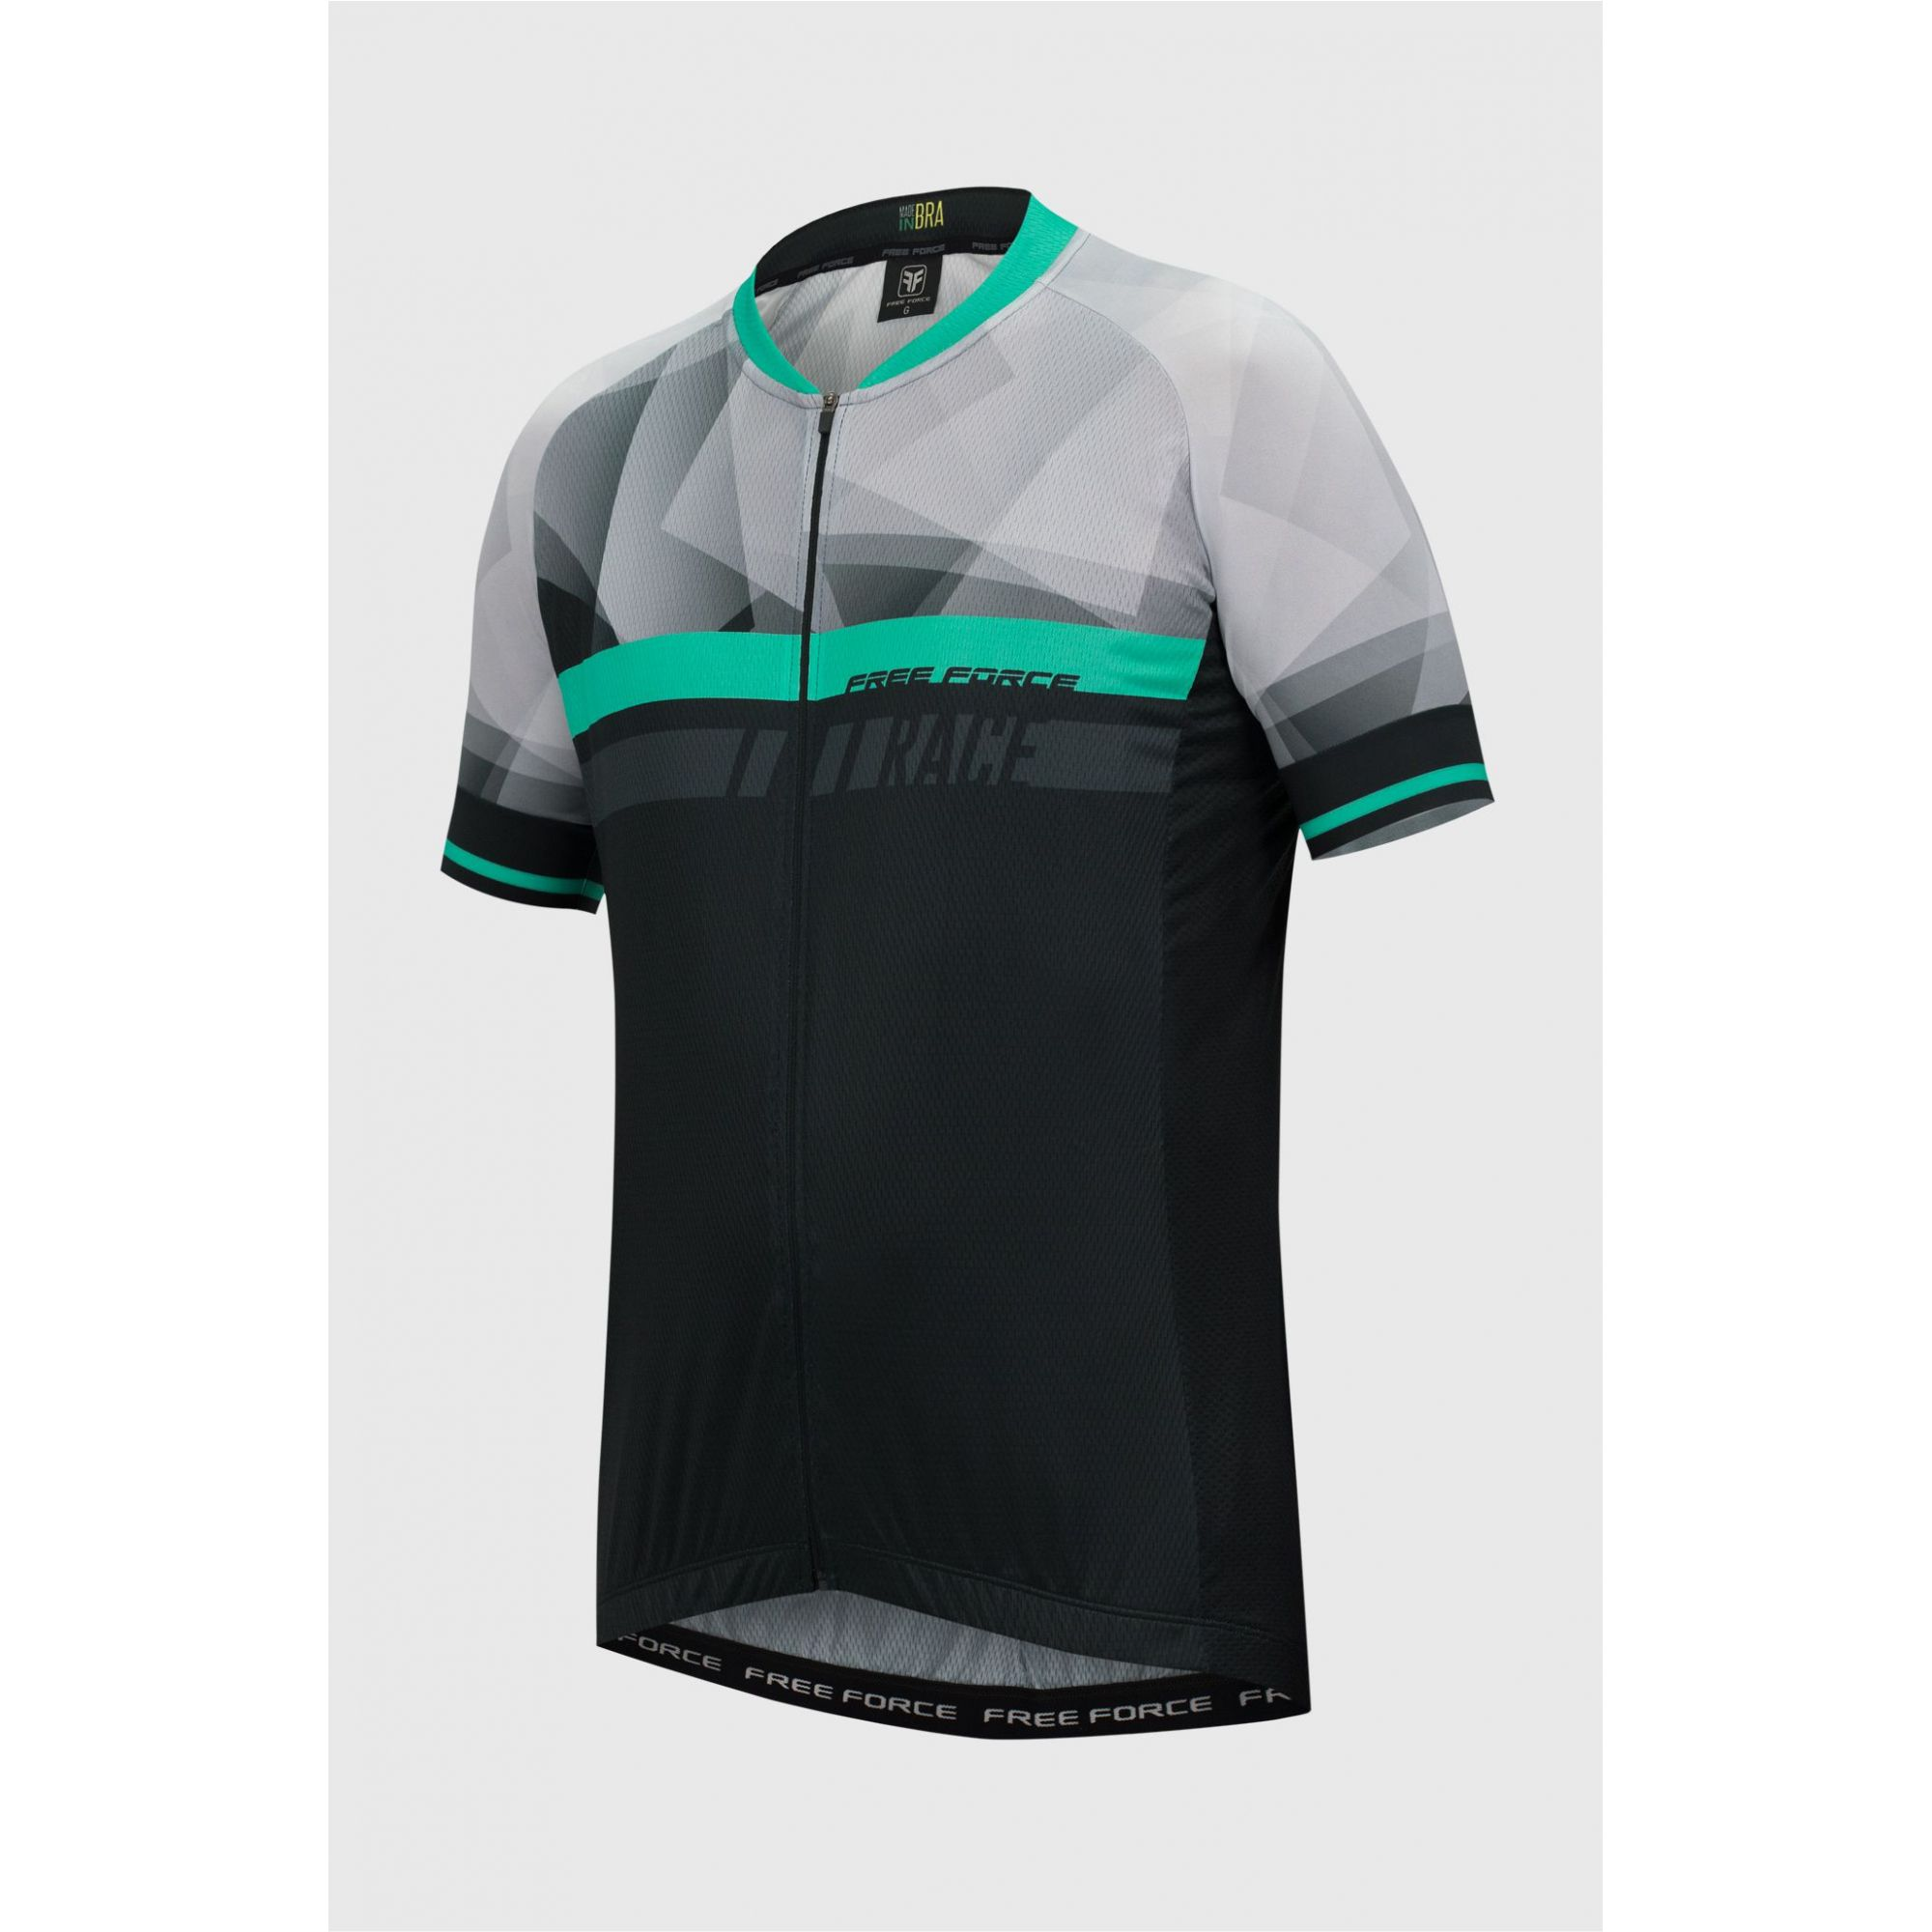 Camisa de Ciclismo Masculina Sport System Free Force